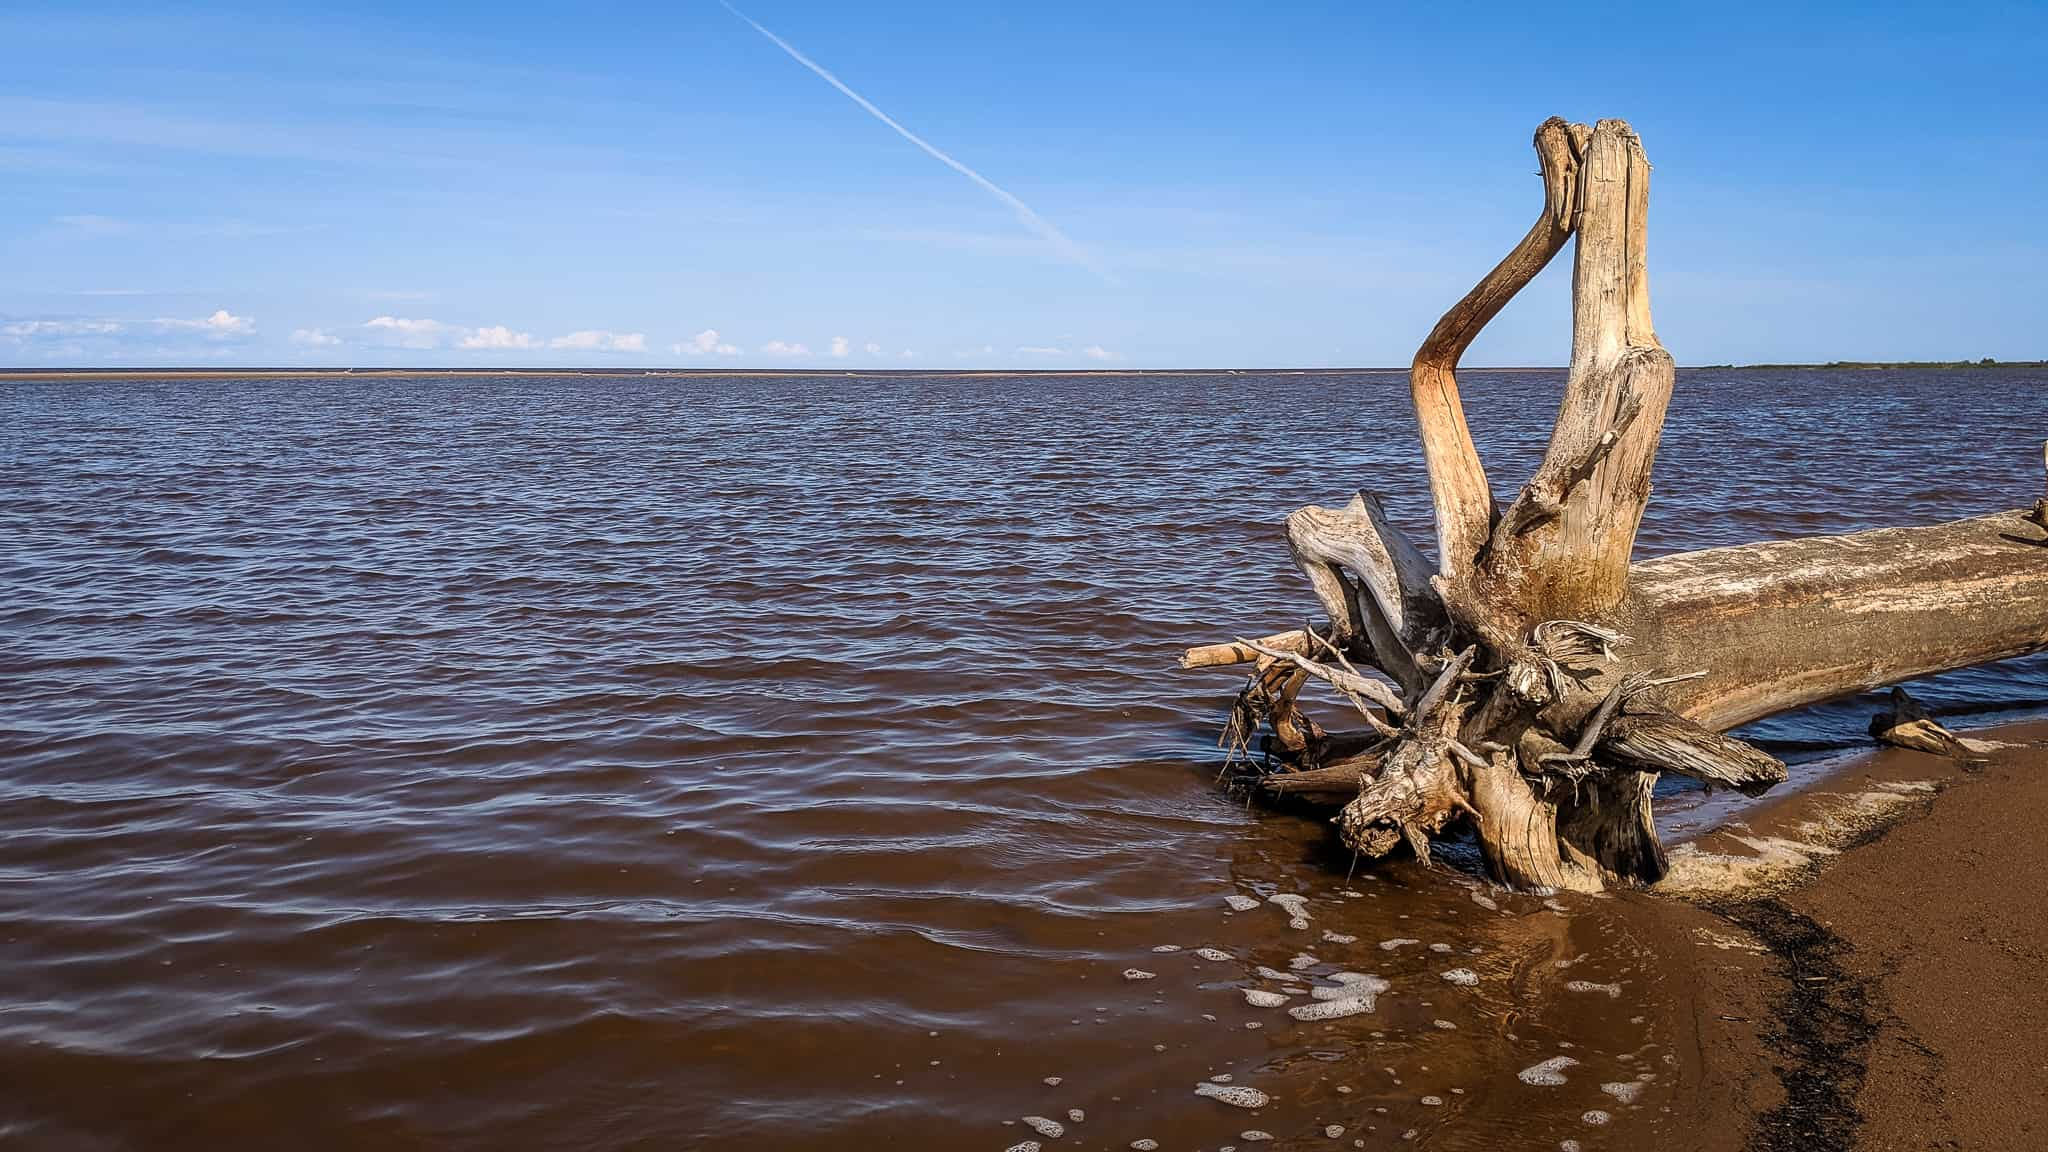 Great Slave Lake 2020 water levels confirmed highest on record - Cabin Radio